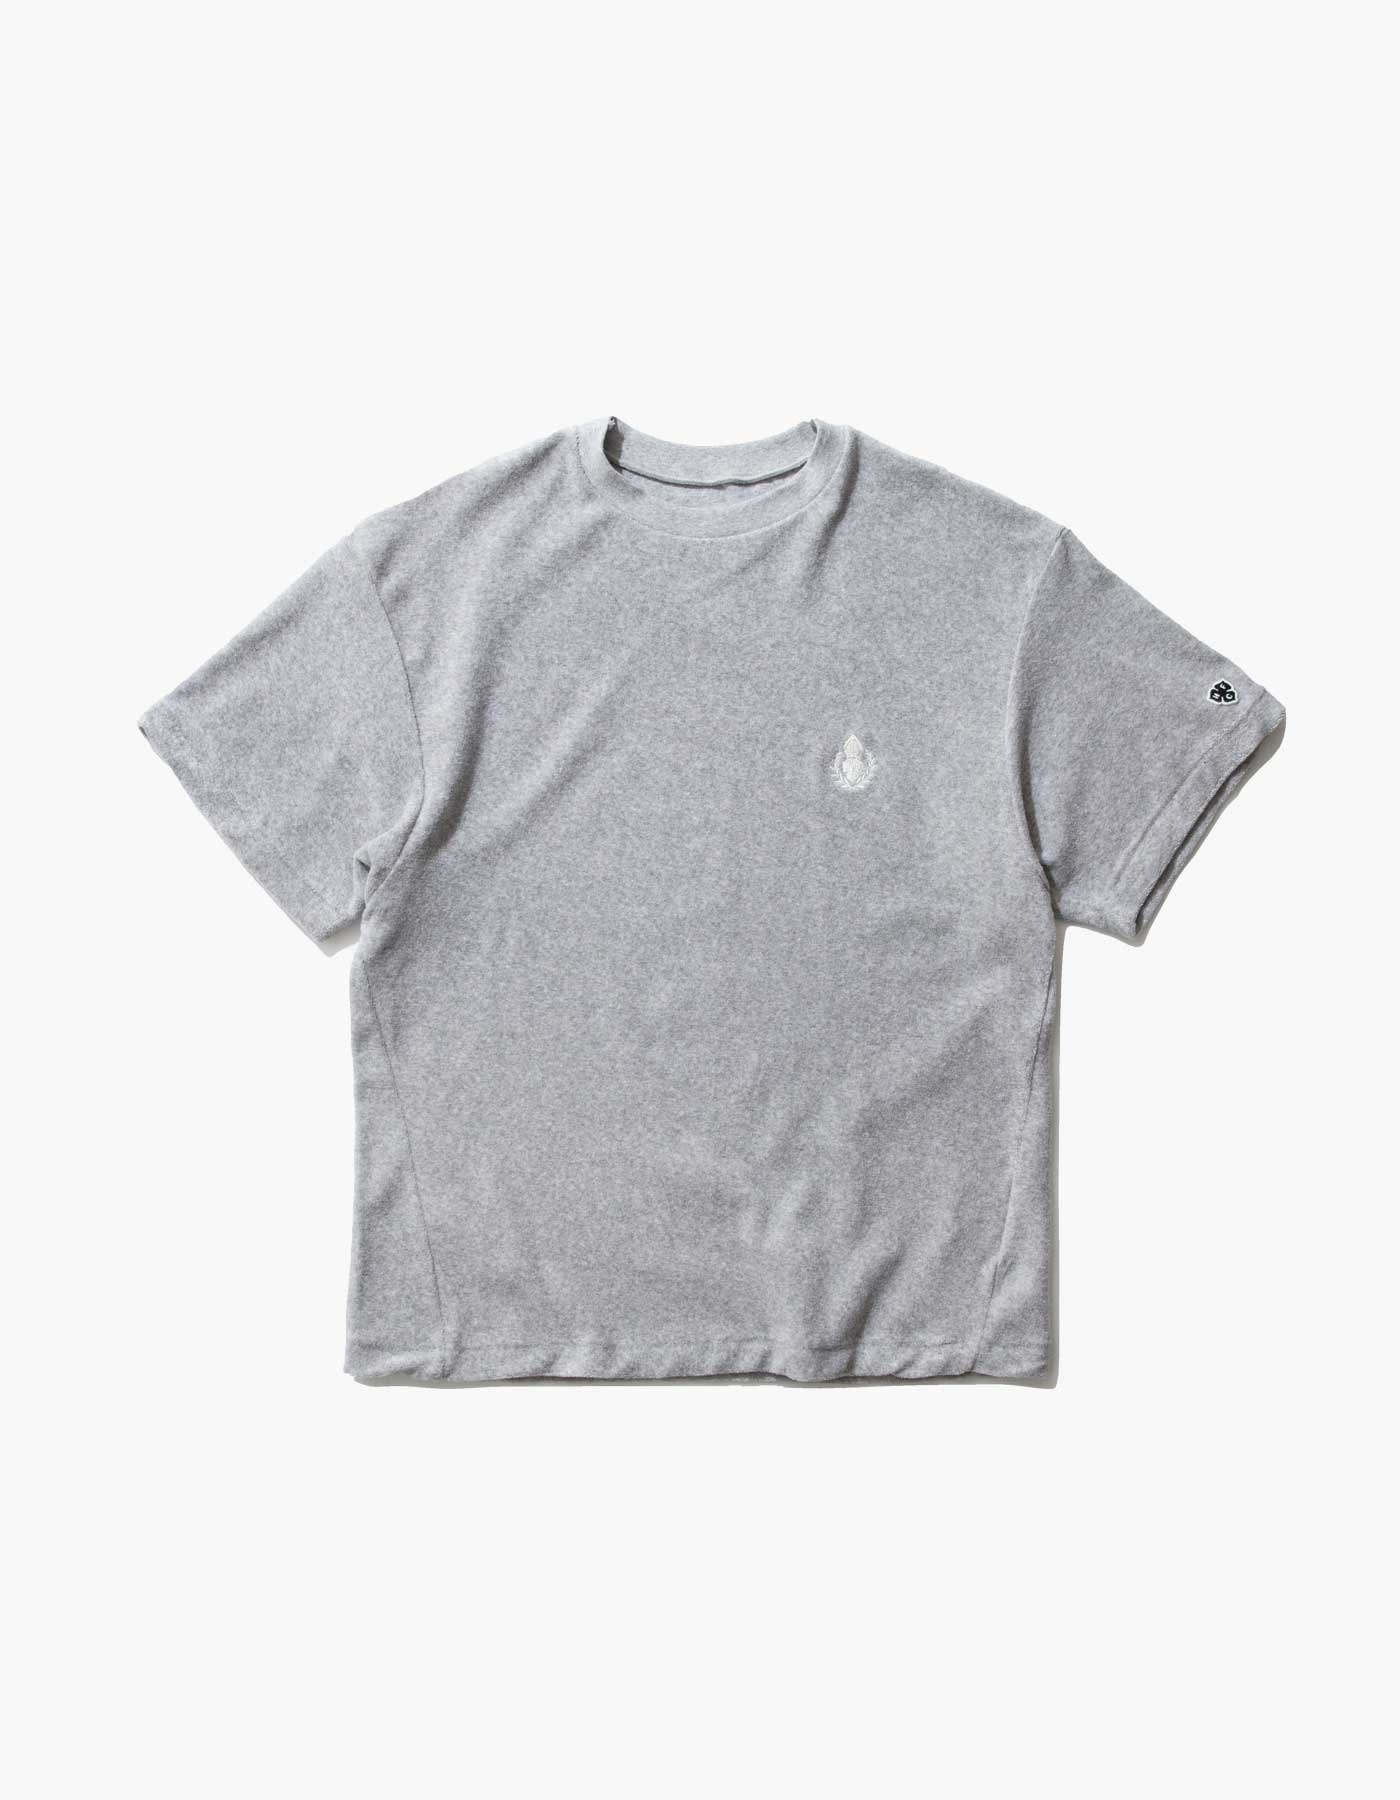 HFC CREST TOWEL T-SHIRTS / M.GREY(5%)